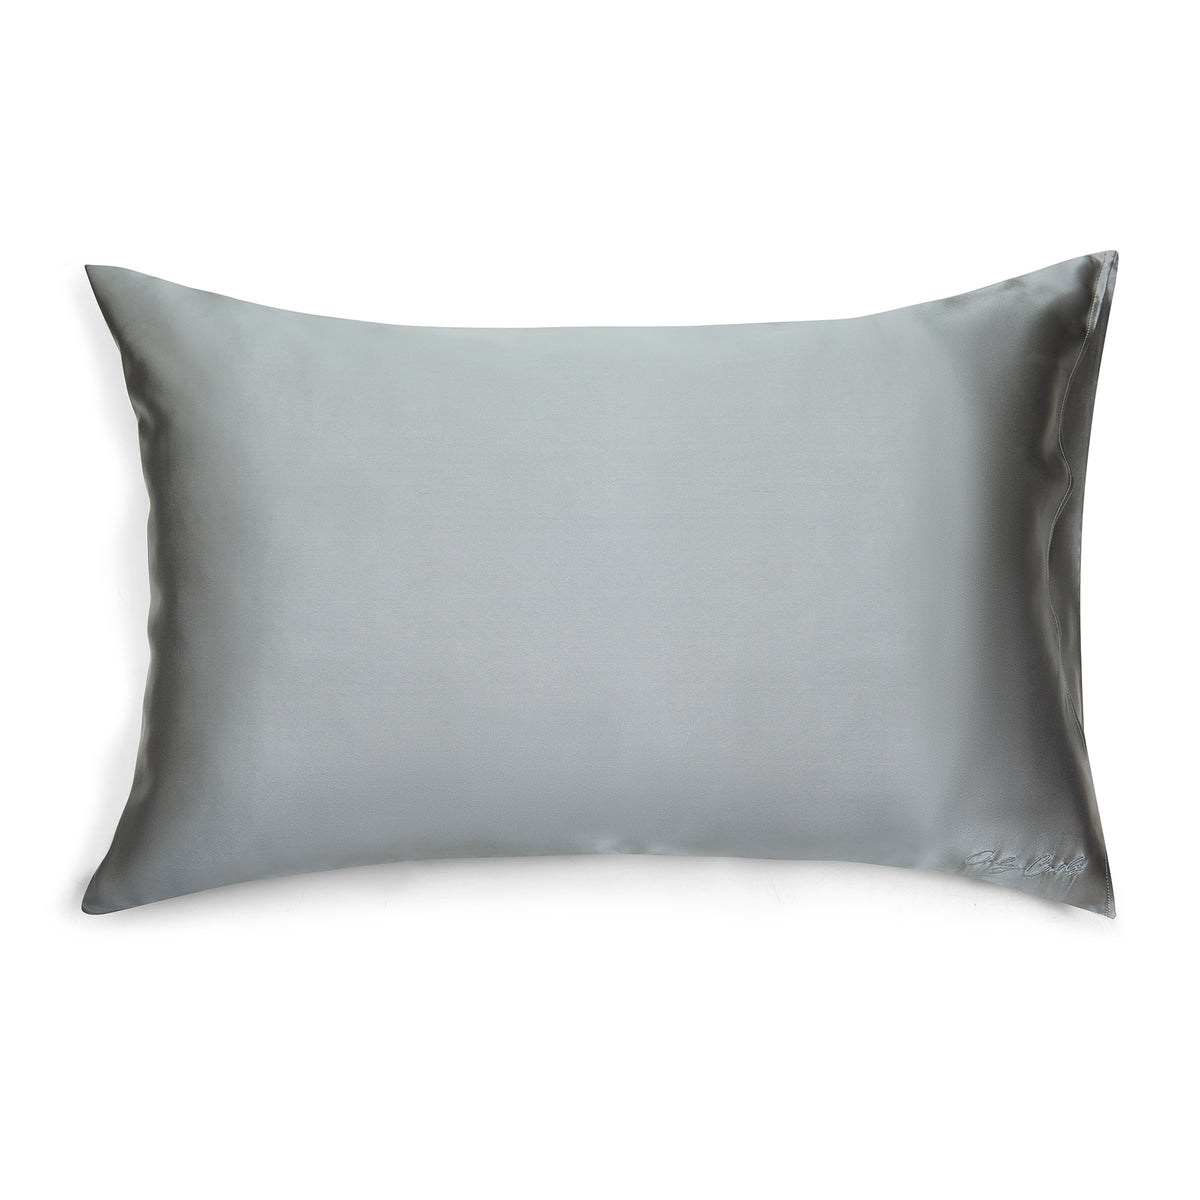 Only Curls Silk Pillowcase - Grey - Only Curls